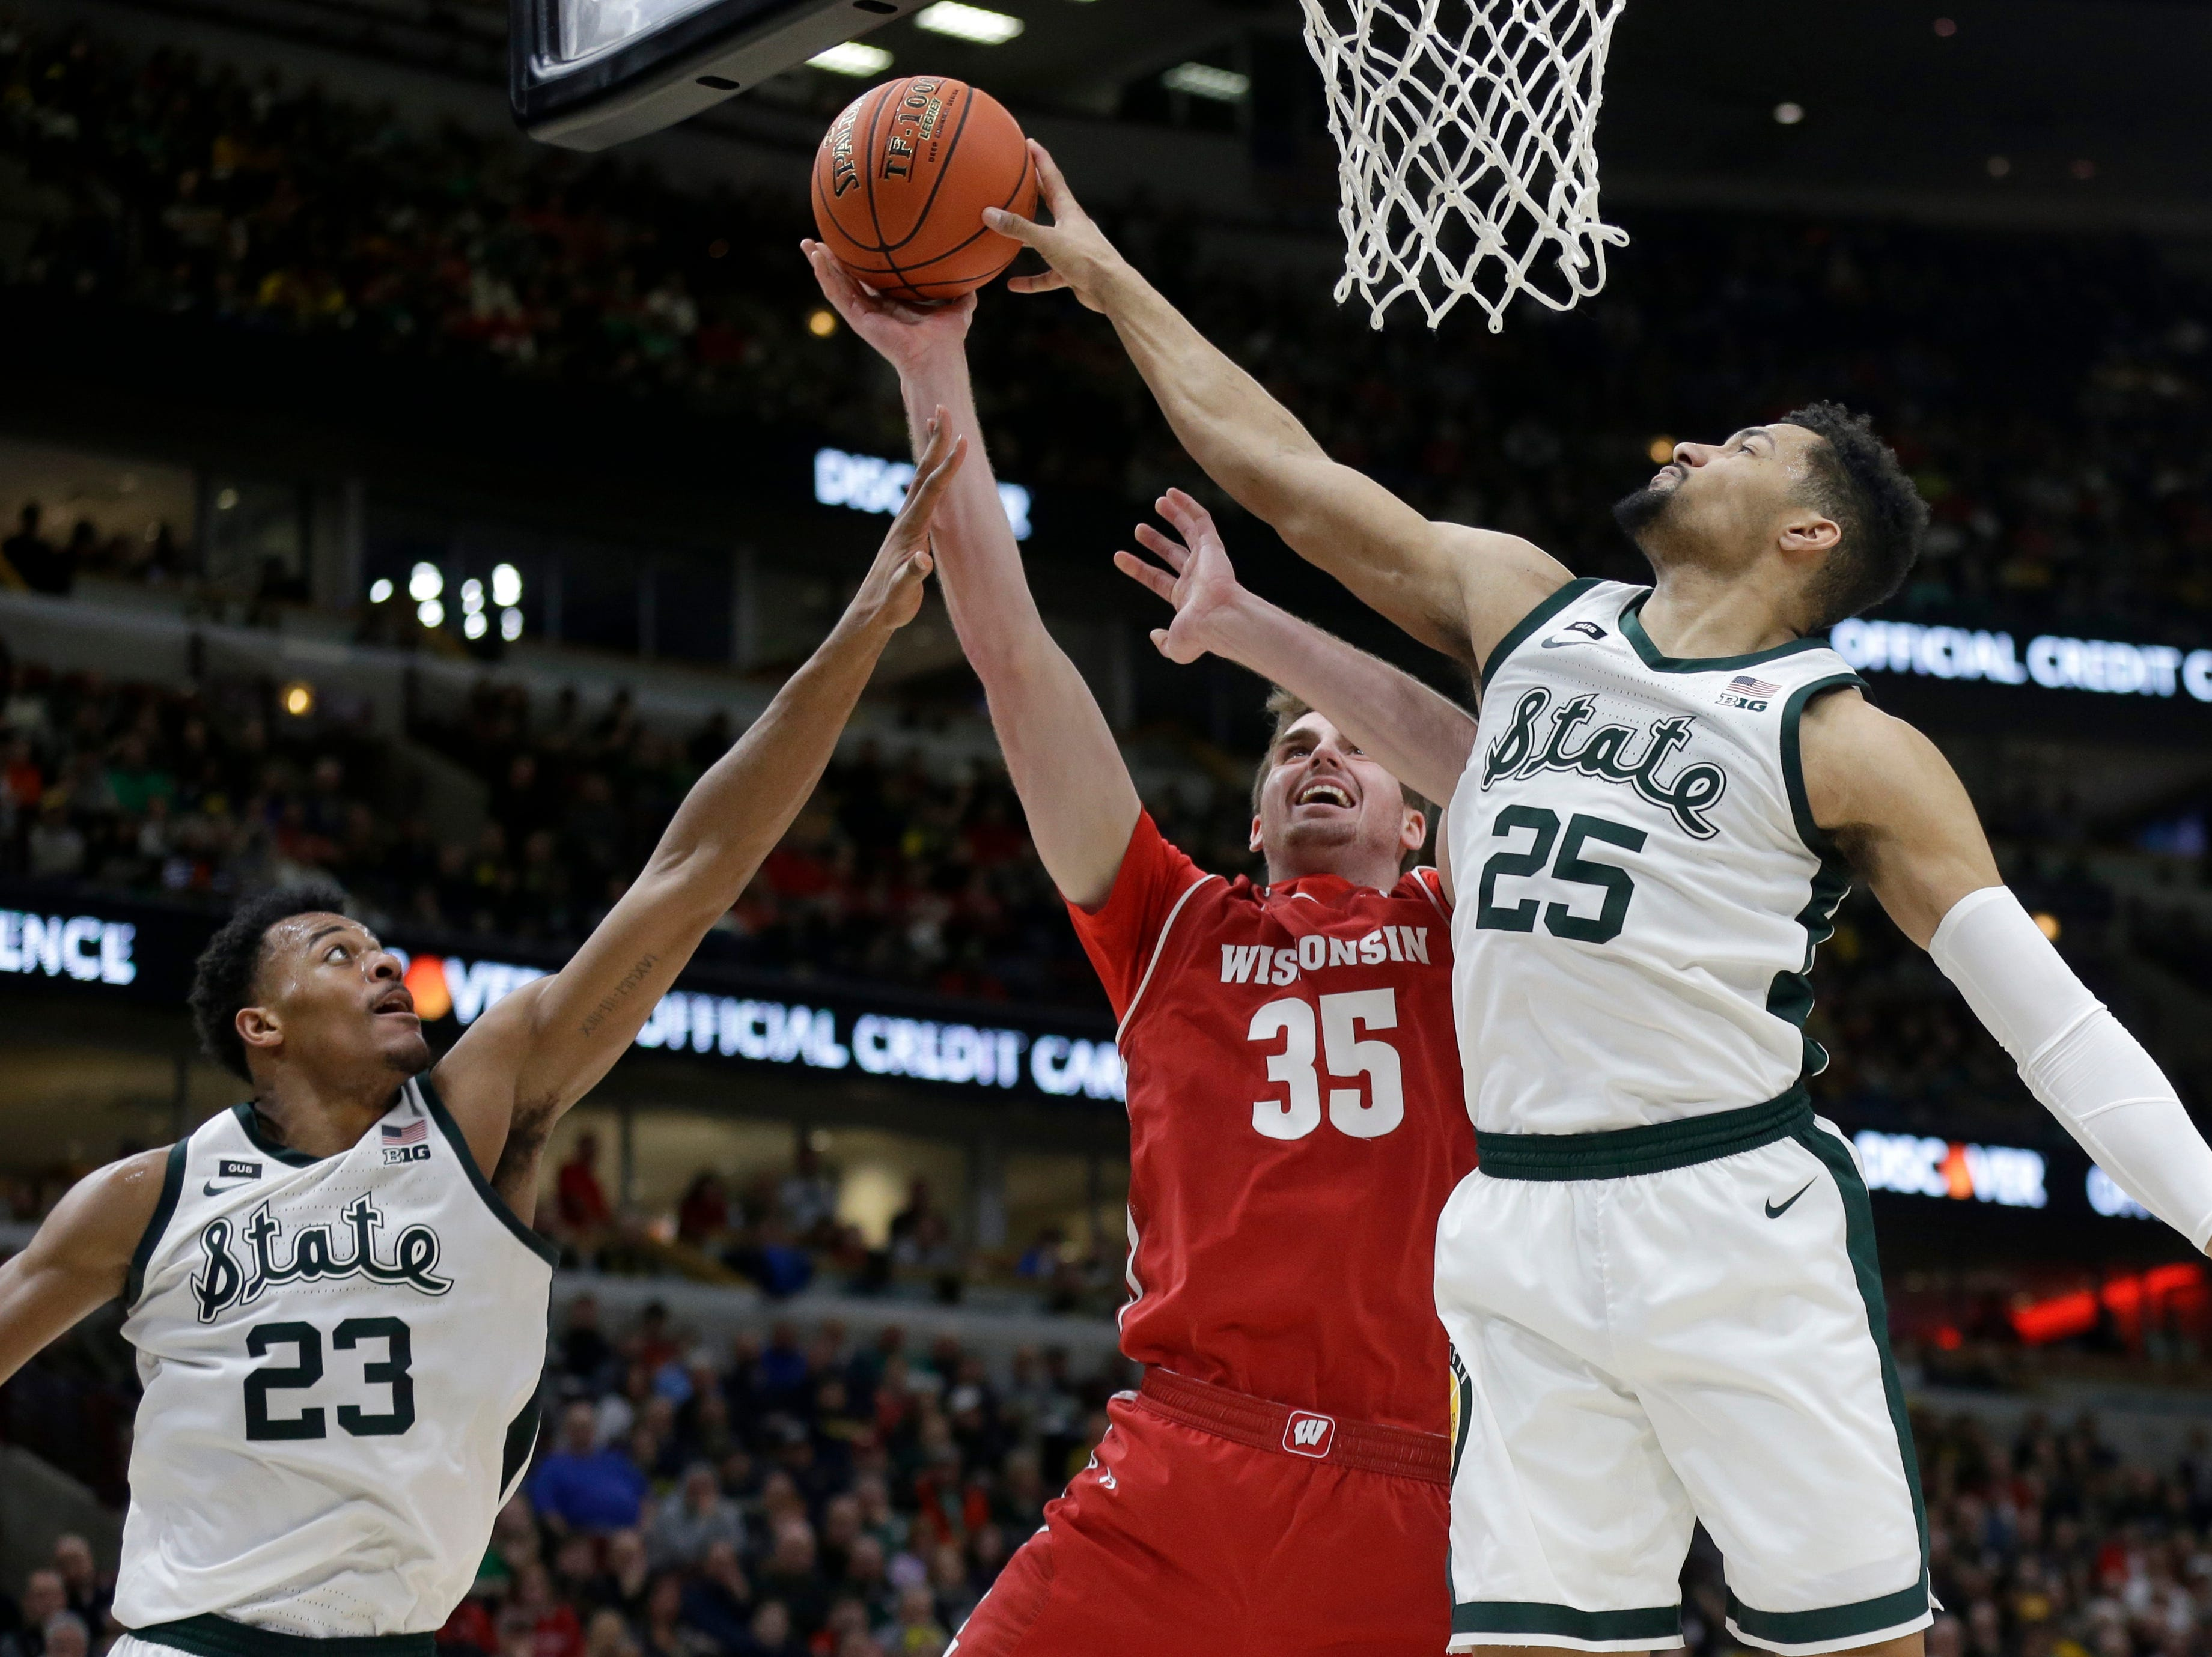 Michigan State's Kenny Goins (25) blocks a shot by Wisconsin's Nate Reuvers (35) during the second half of an NCAA college basketball game in the semifinals of the Big Ten Conference tournament, Saturday, March 16, 2019, in Chicago.